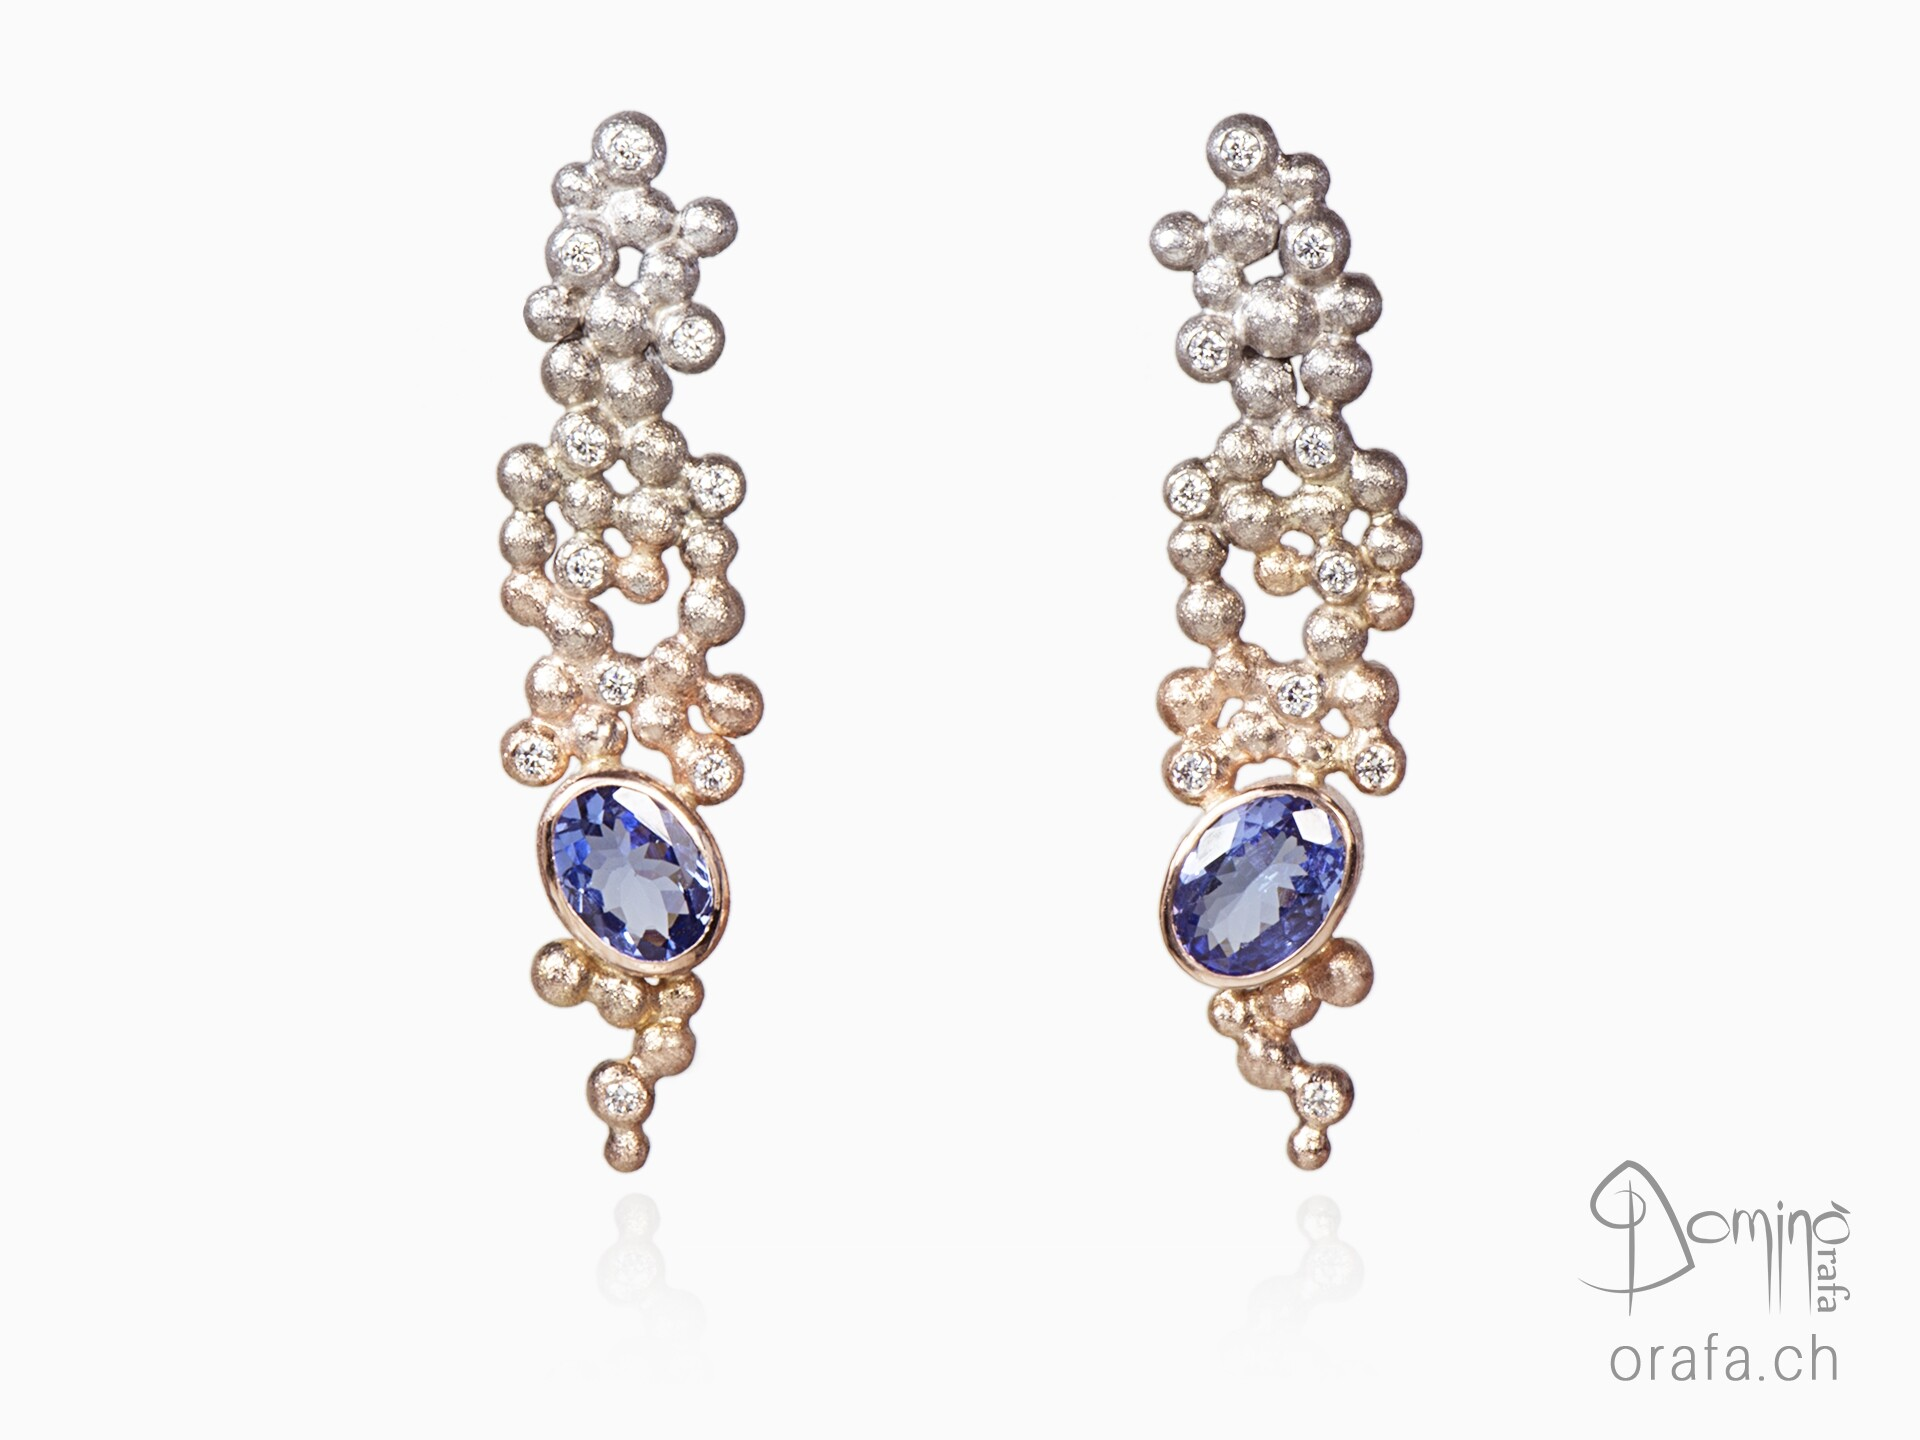 Alba Spheres earrings with tanzanites and diamonds